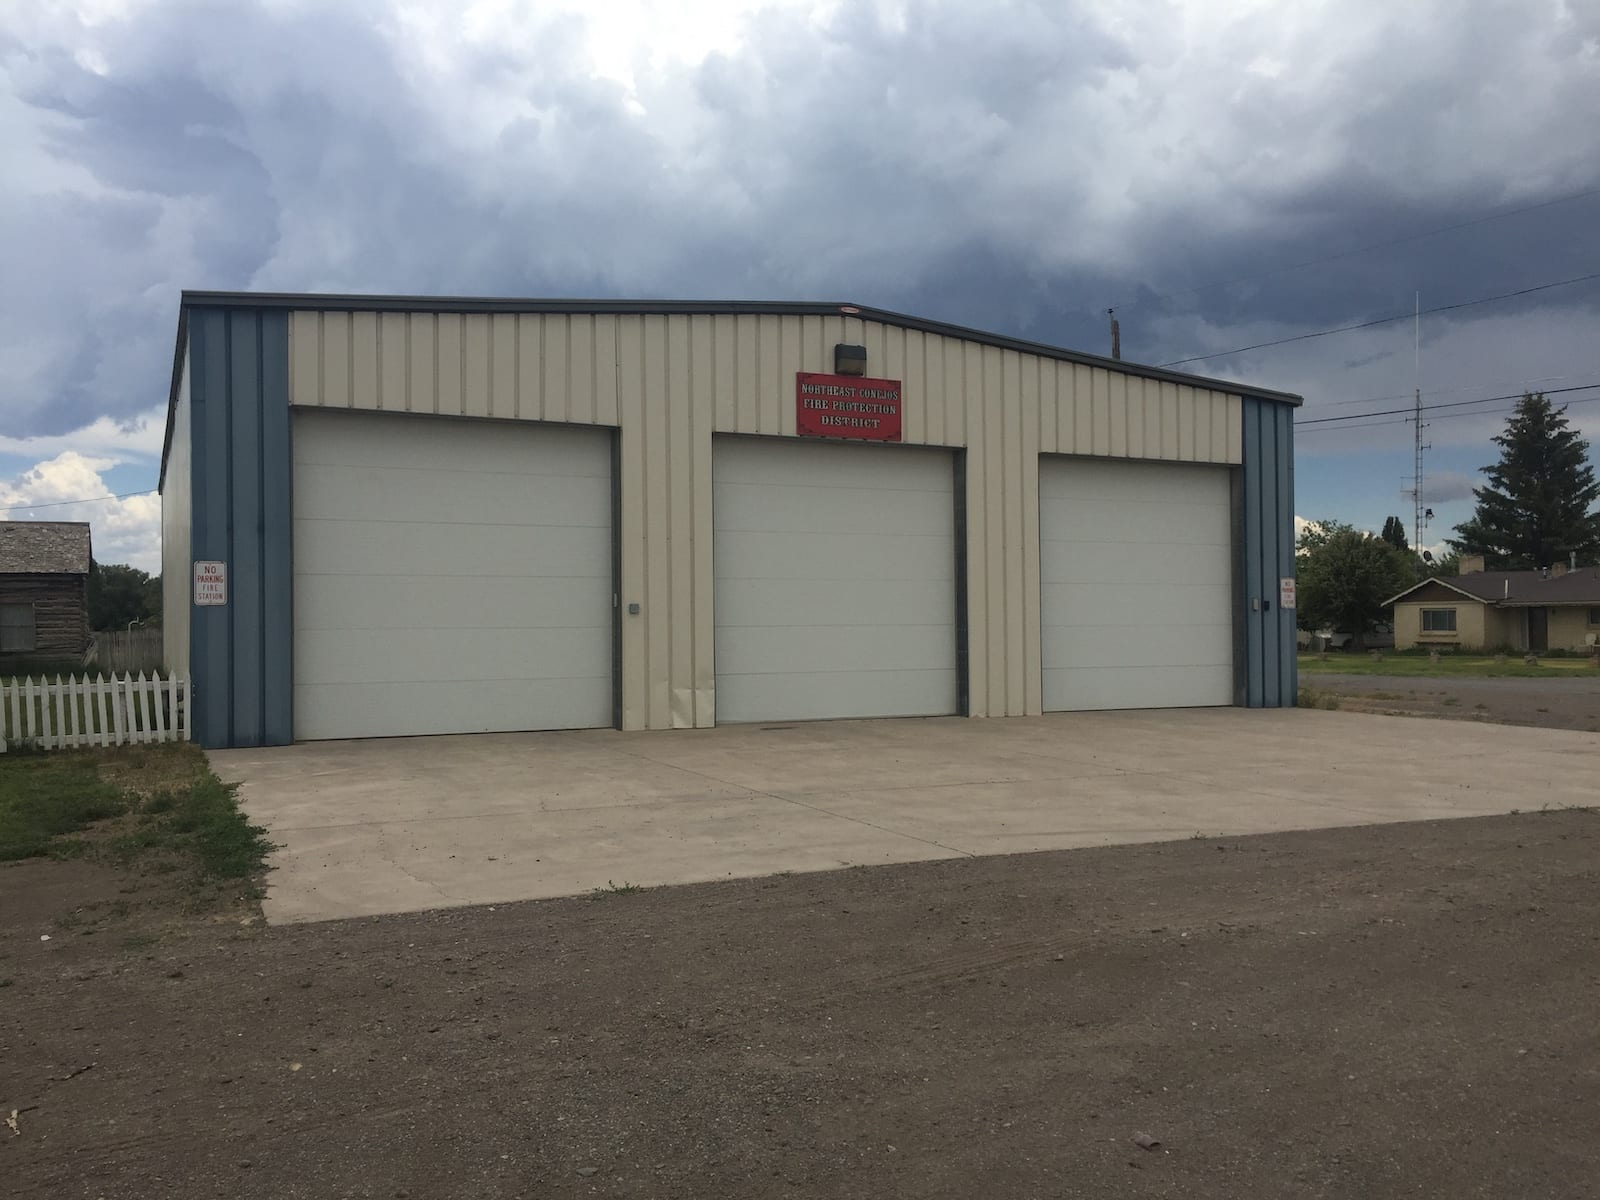 Sanford Colorado Northeast Conejos Fire Protection District